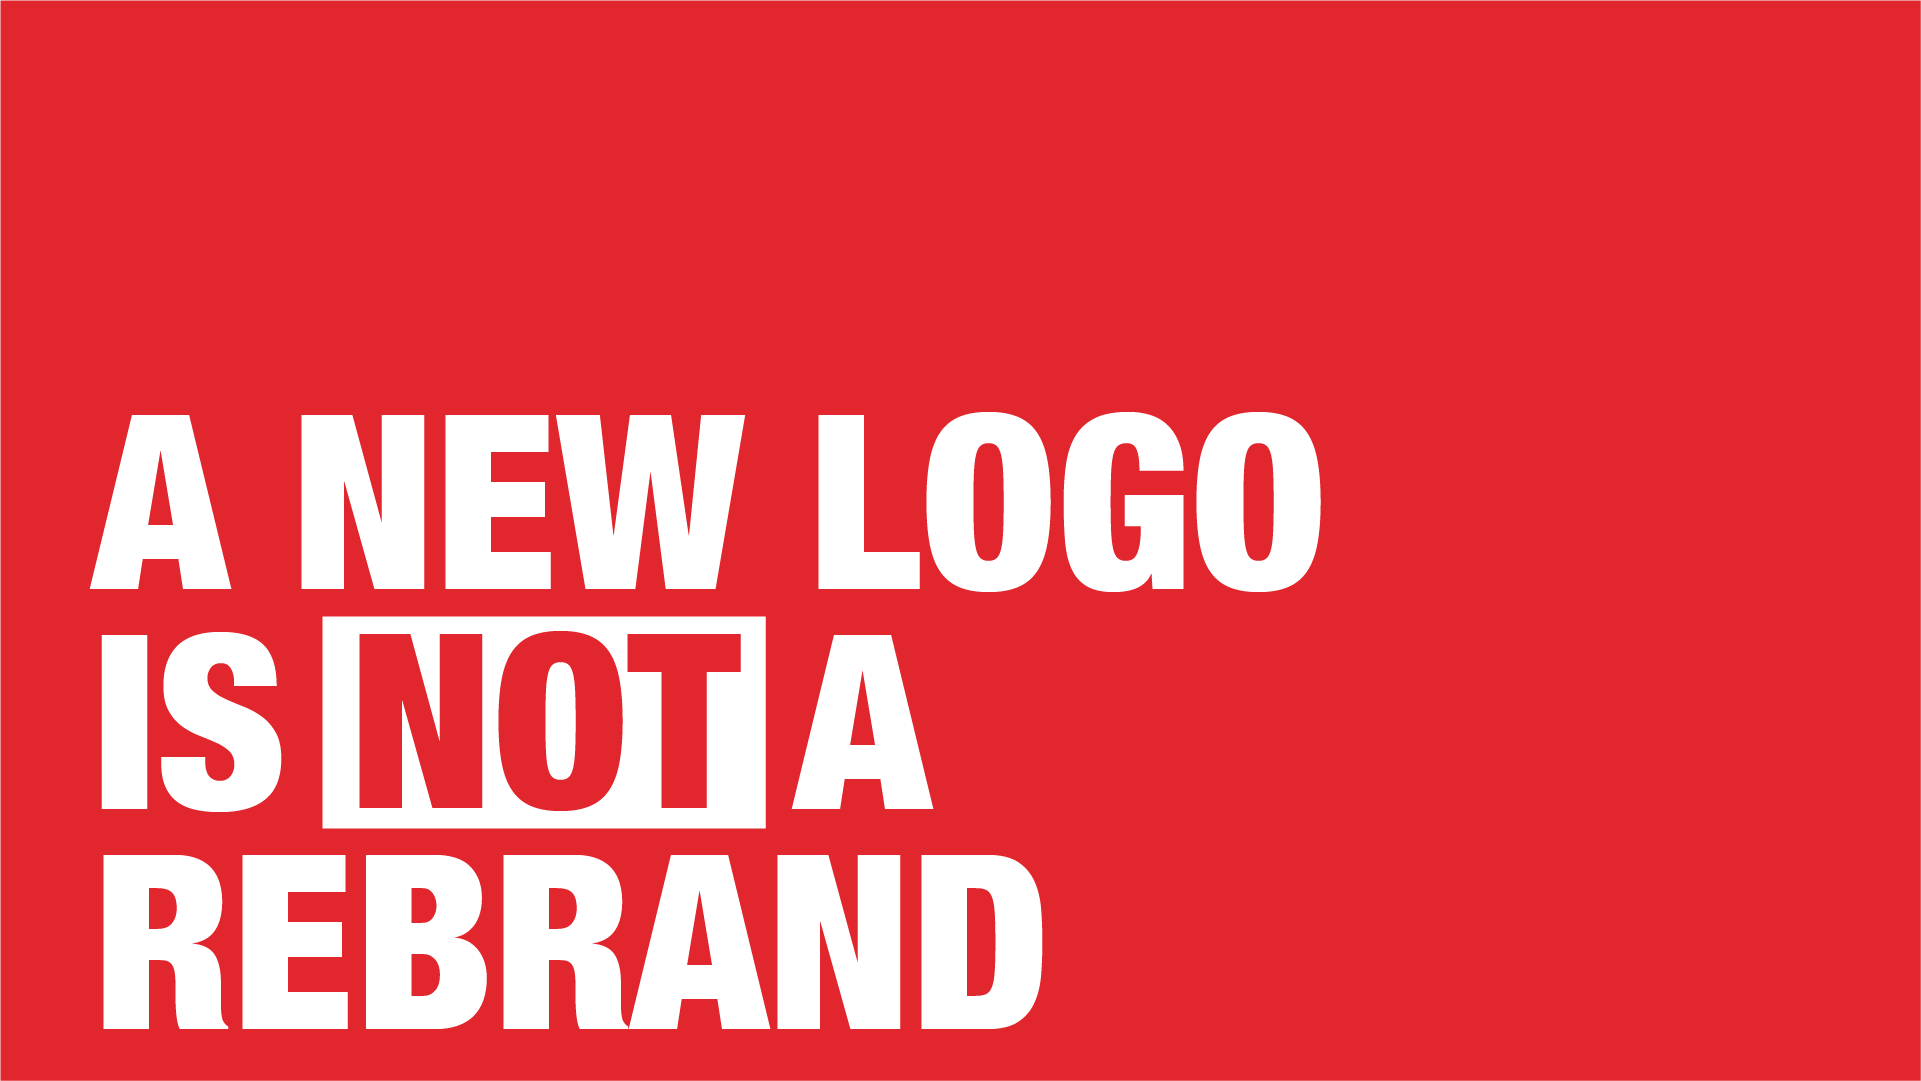 A new logo is not a rebrand - Manraj Ubhi